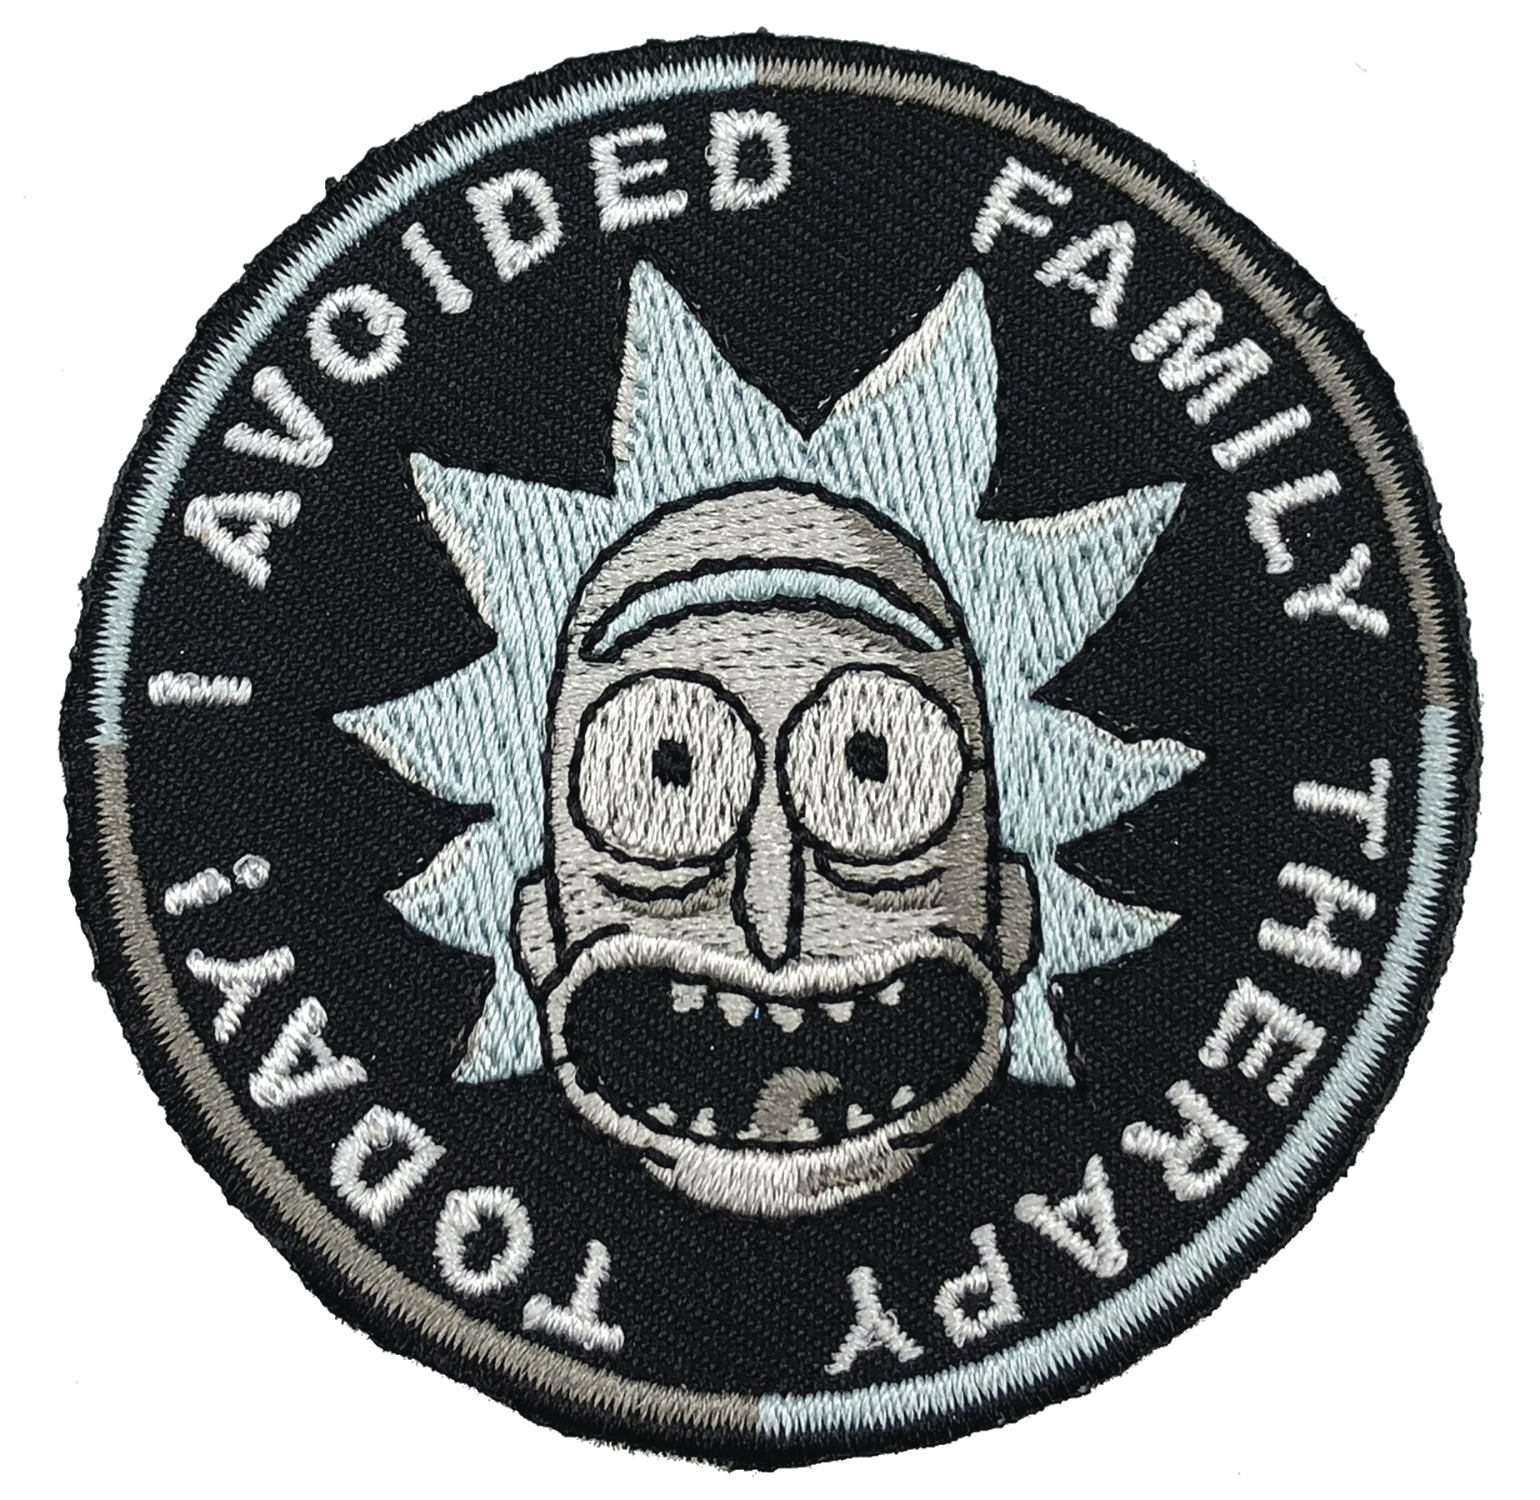 Rick and Morty: I AVOIDED FAMILY THERAPY PATCH